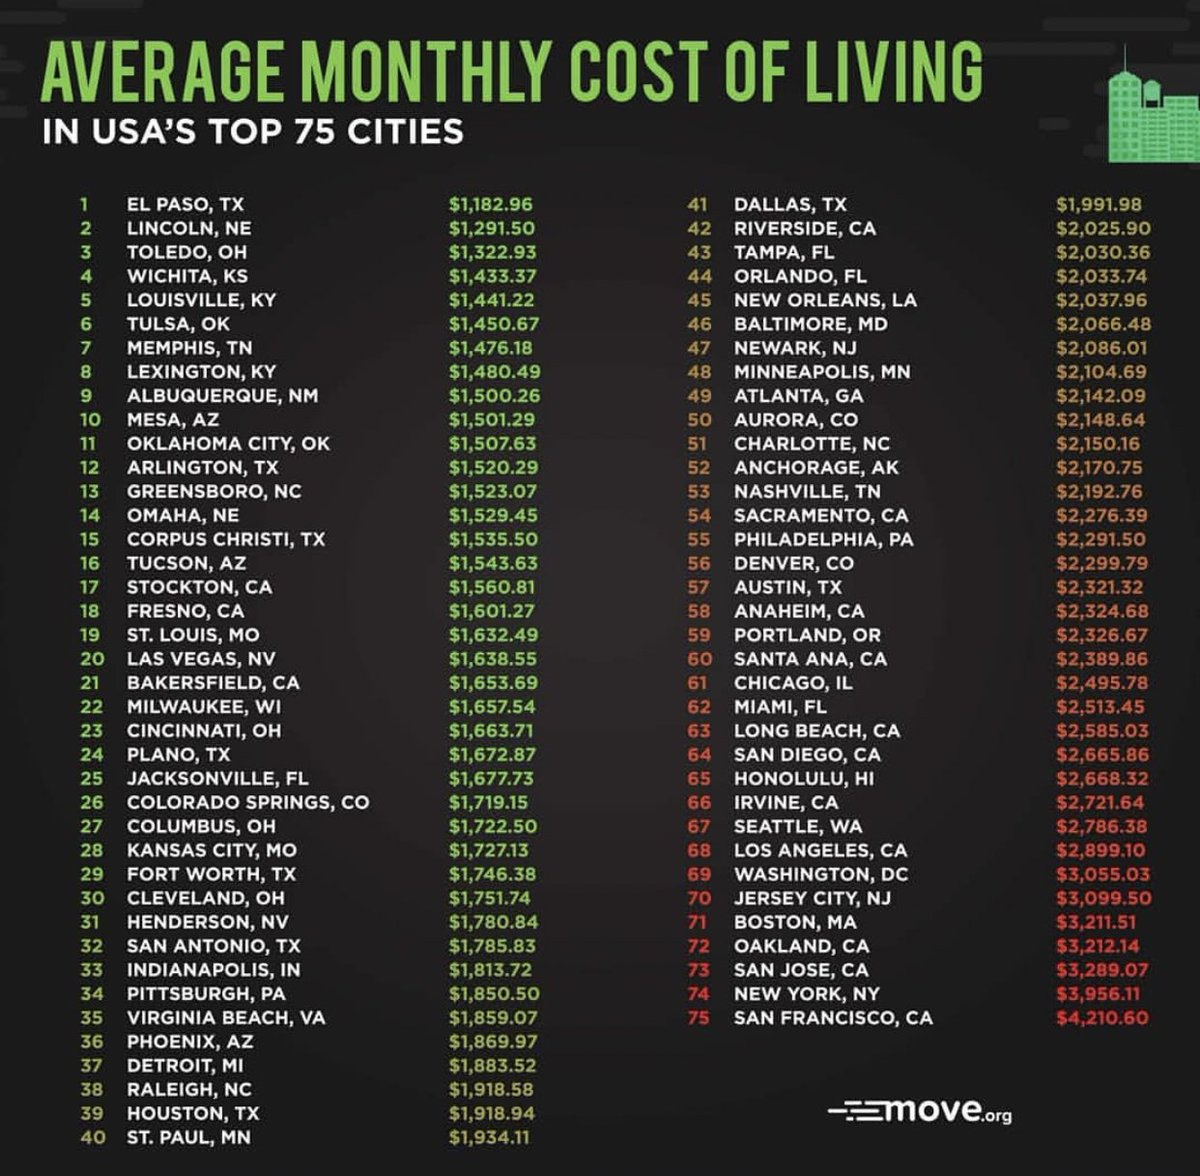 Wendy 𓋹 𓂀 On Twitter Average Monthly Cost Of Living In The Us Top 75 Cities Rent For A 1 Bedroom Apartment Utilities Electricity Water Etc Internet Gas Food Groceries Plus Occasional